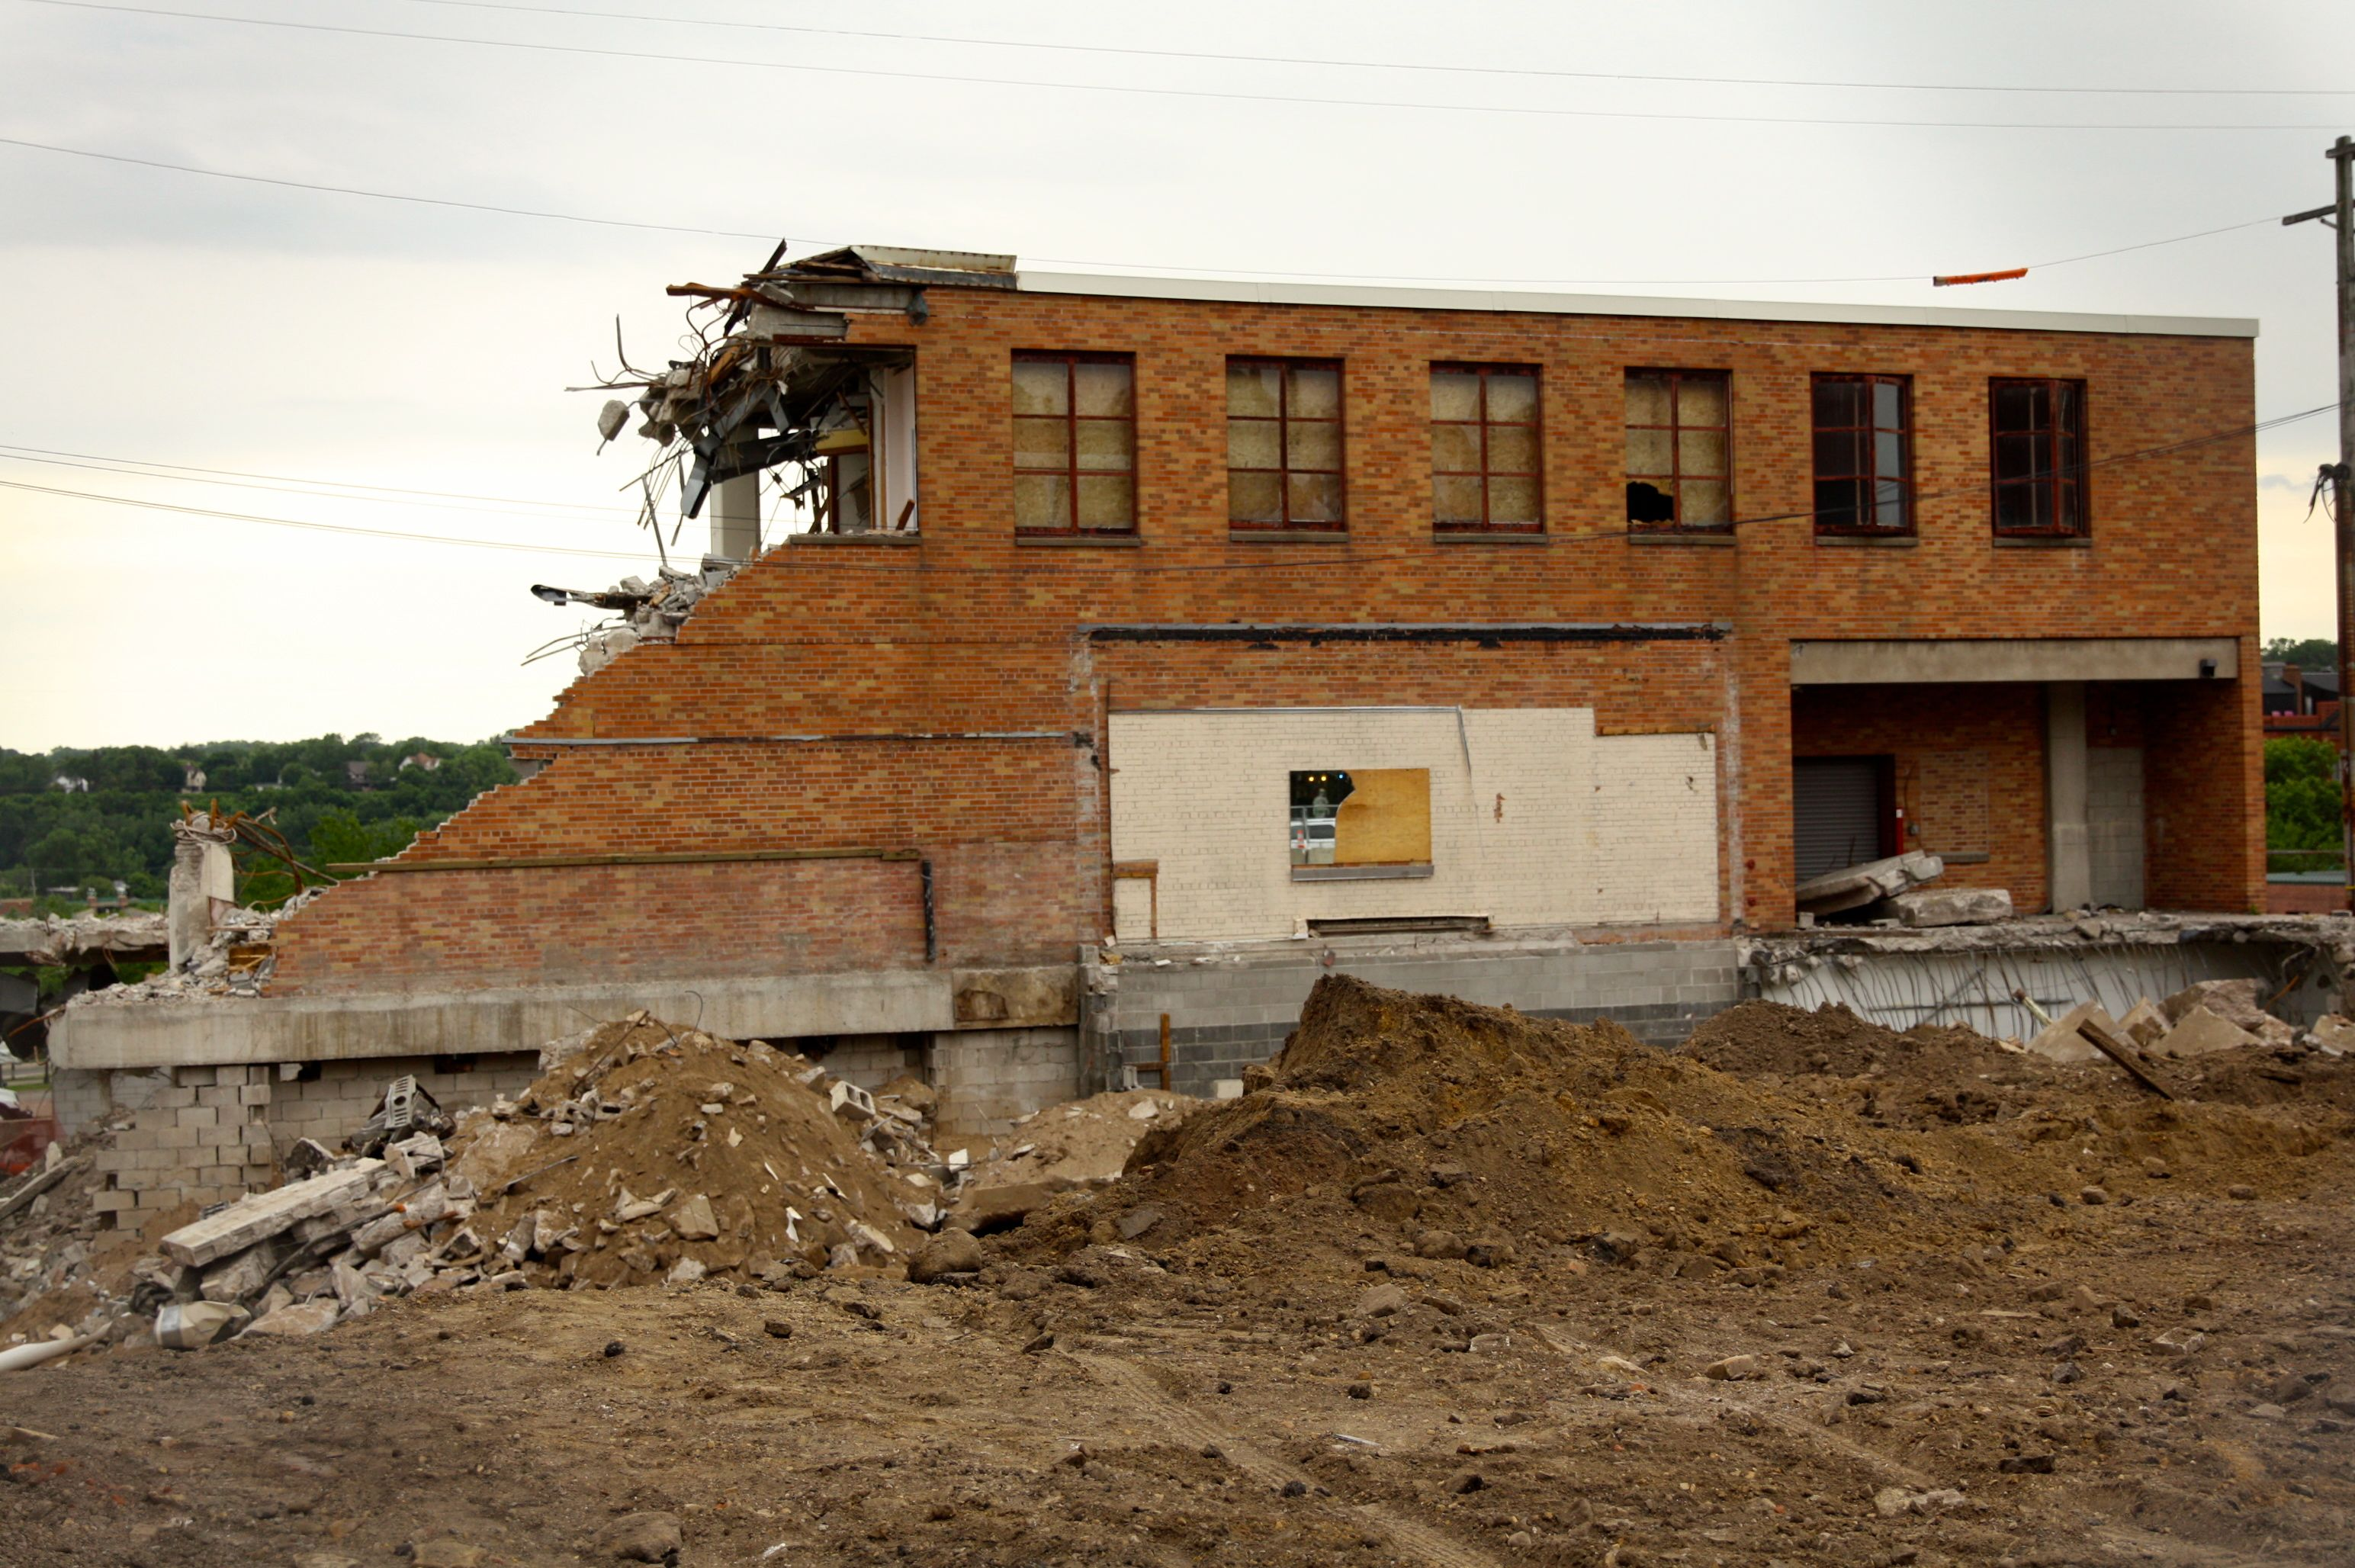 A portion of one building is all that remained of the iconic hardware store.